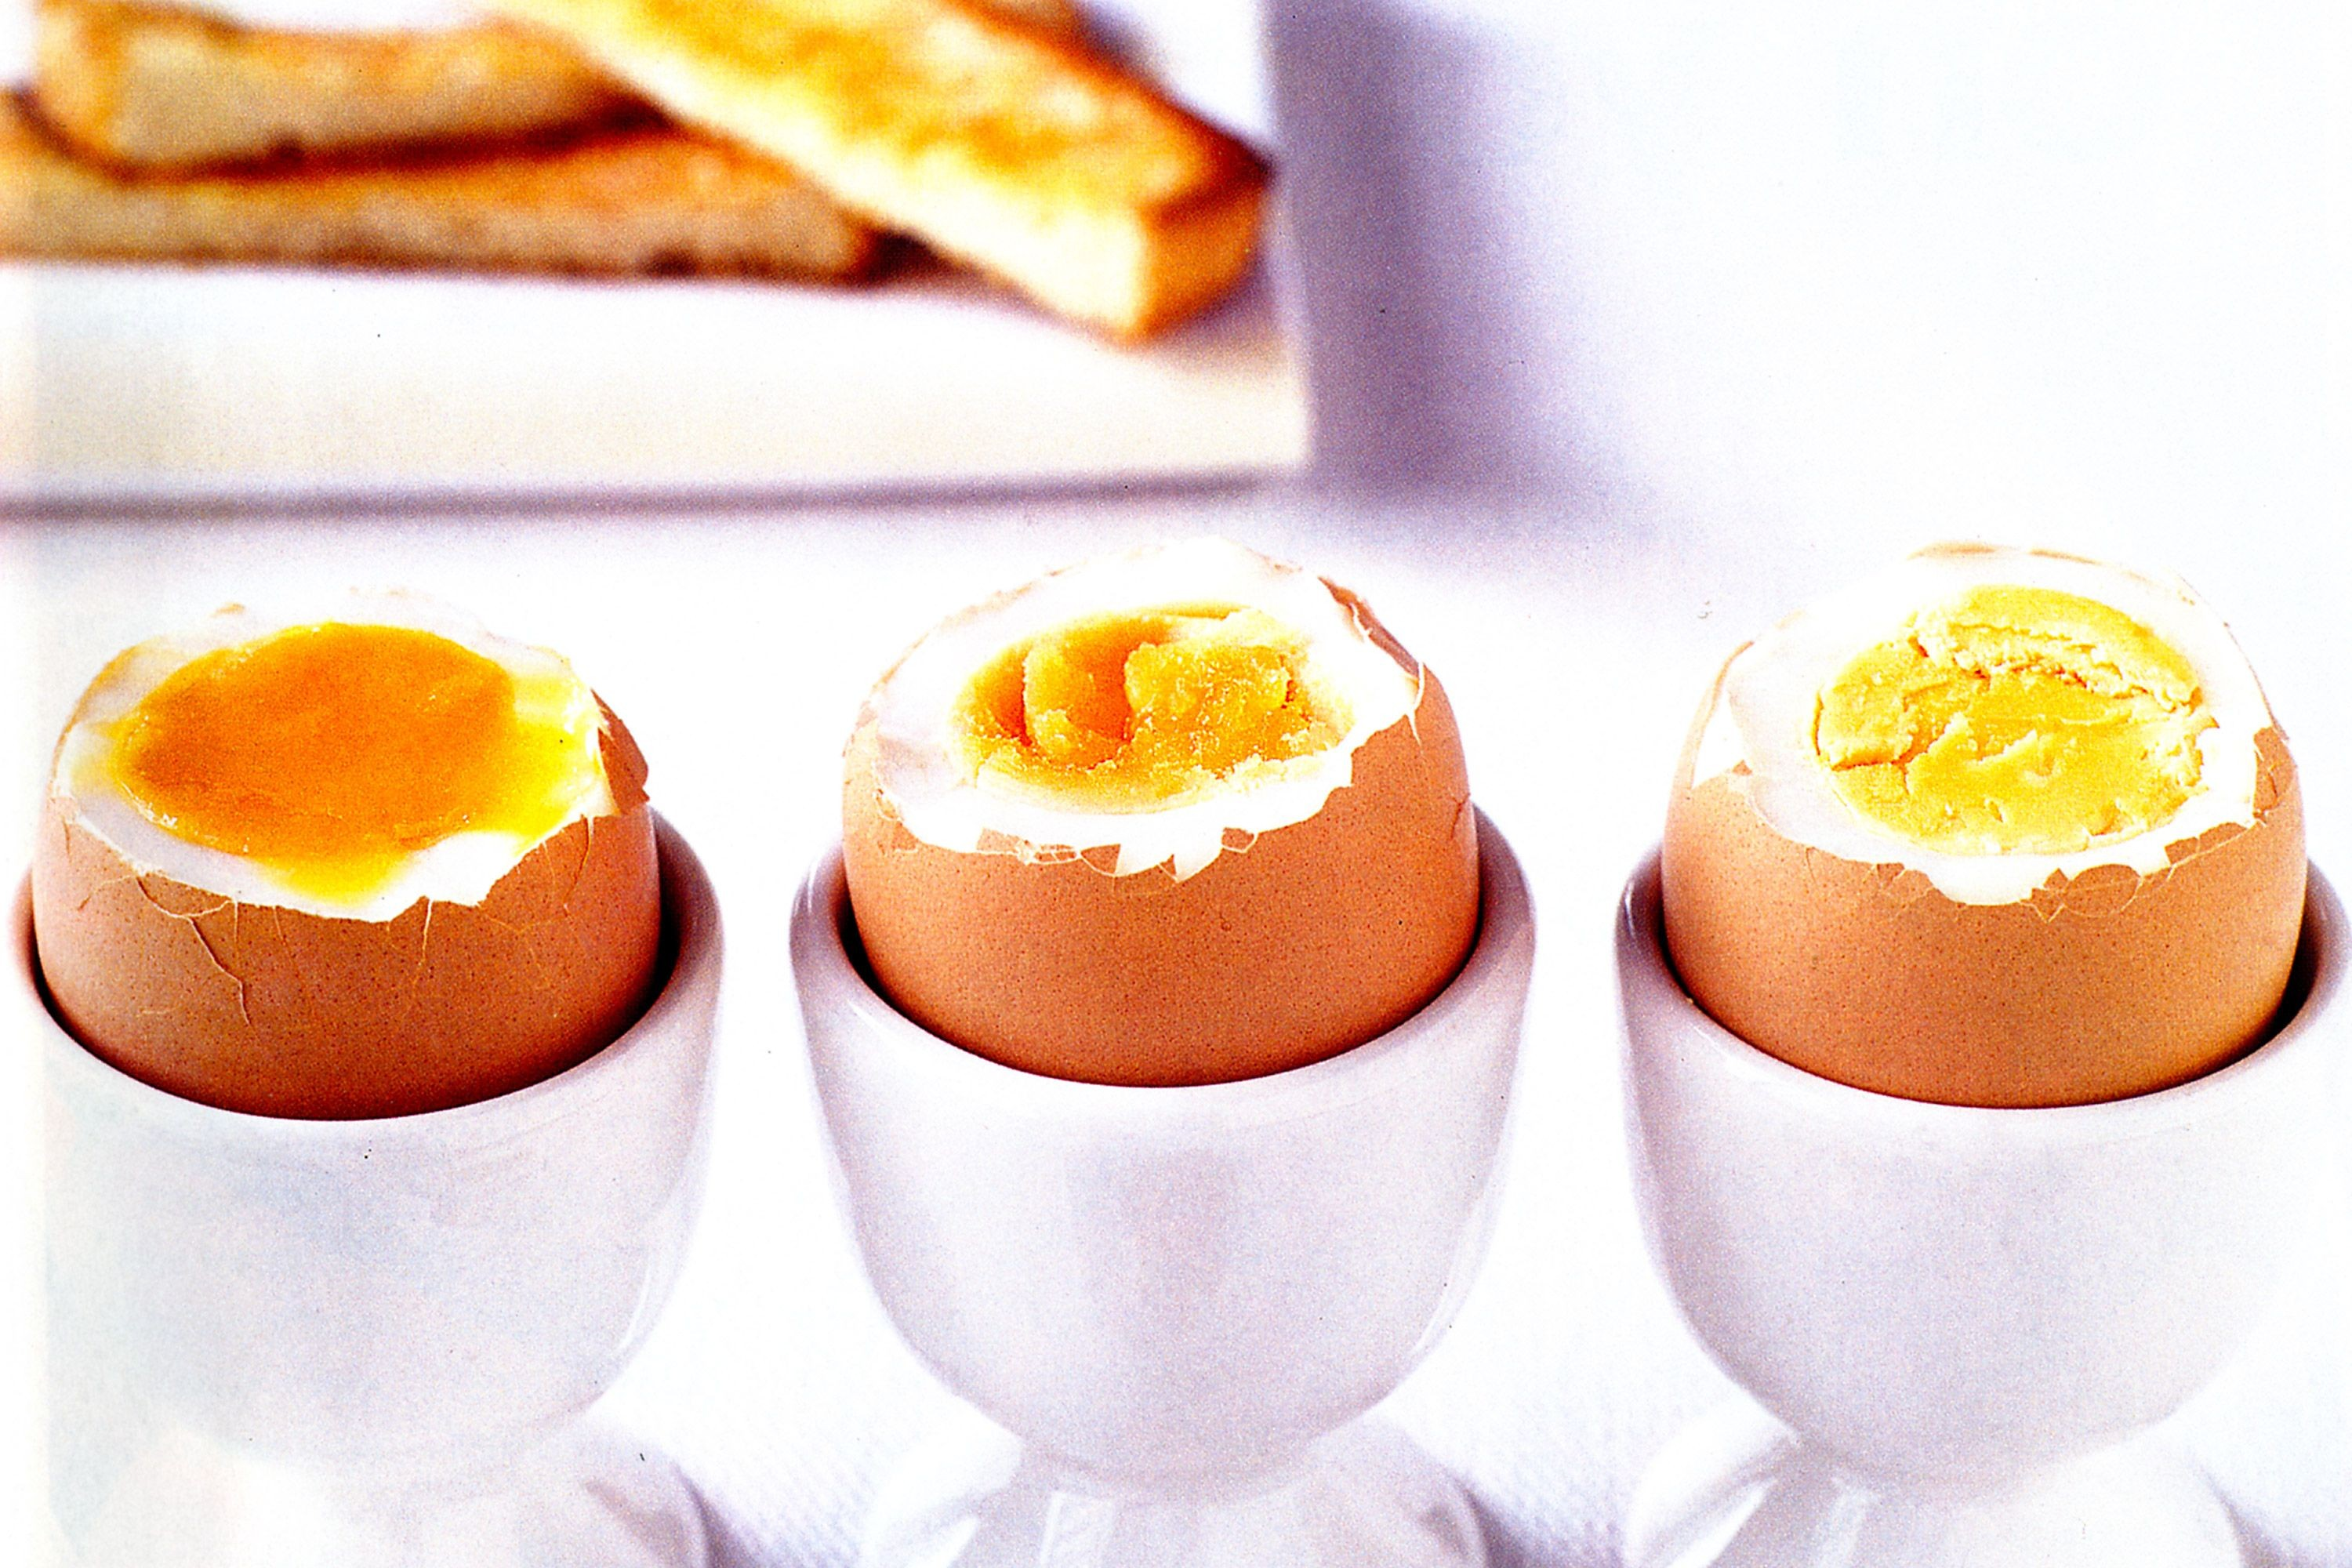 how-to-boil-an-egg-21058-1